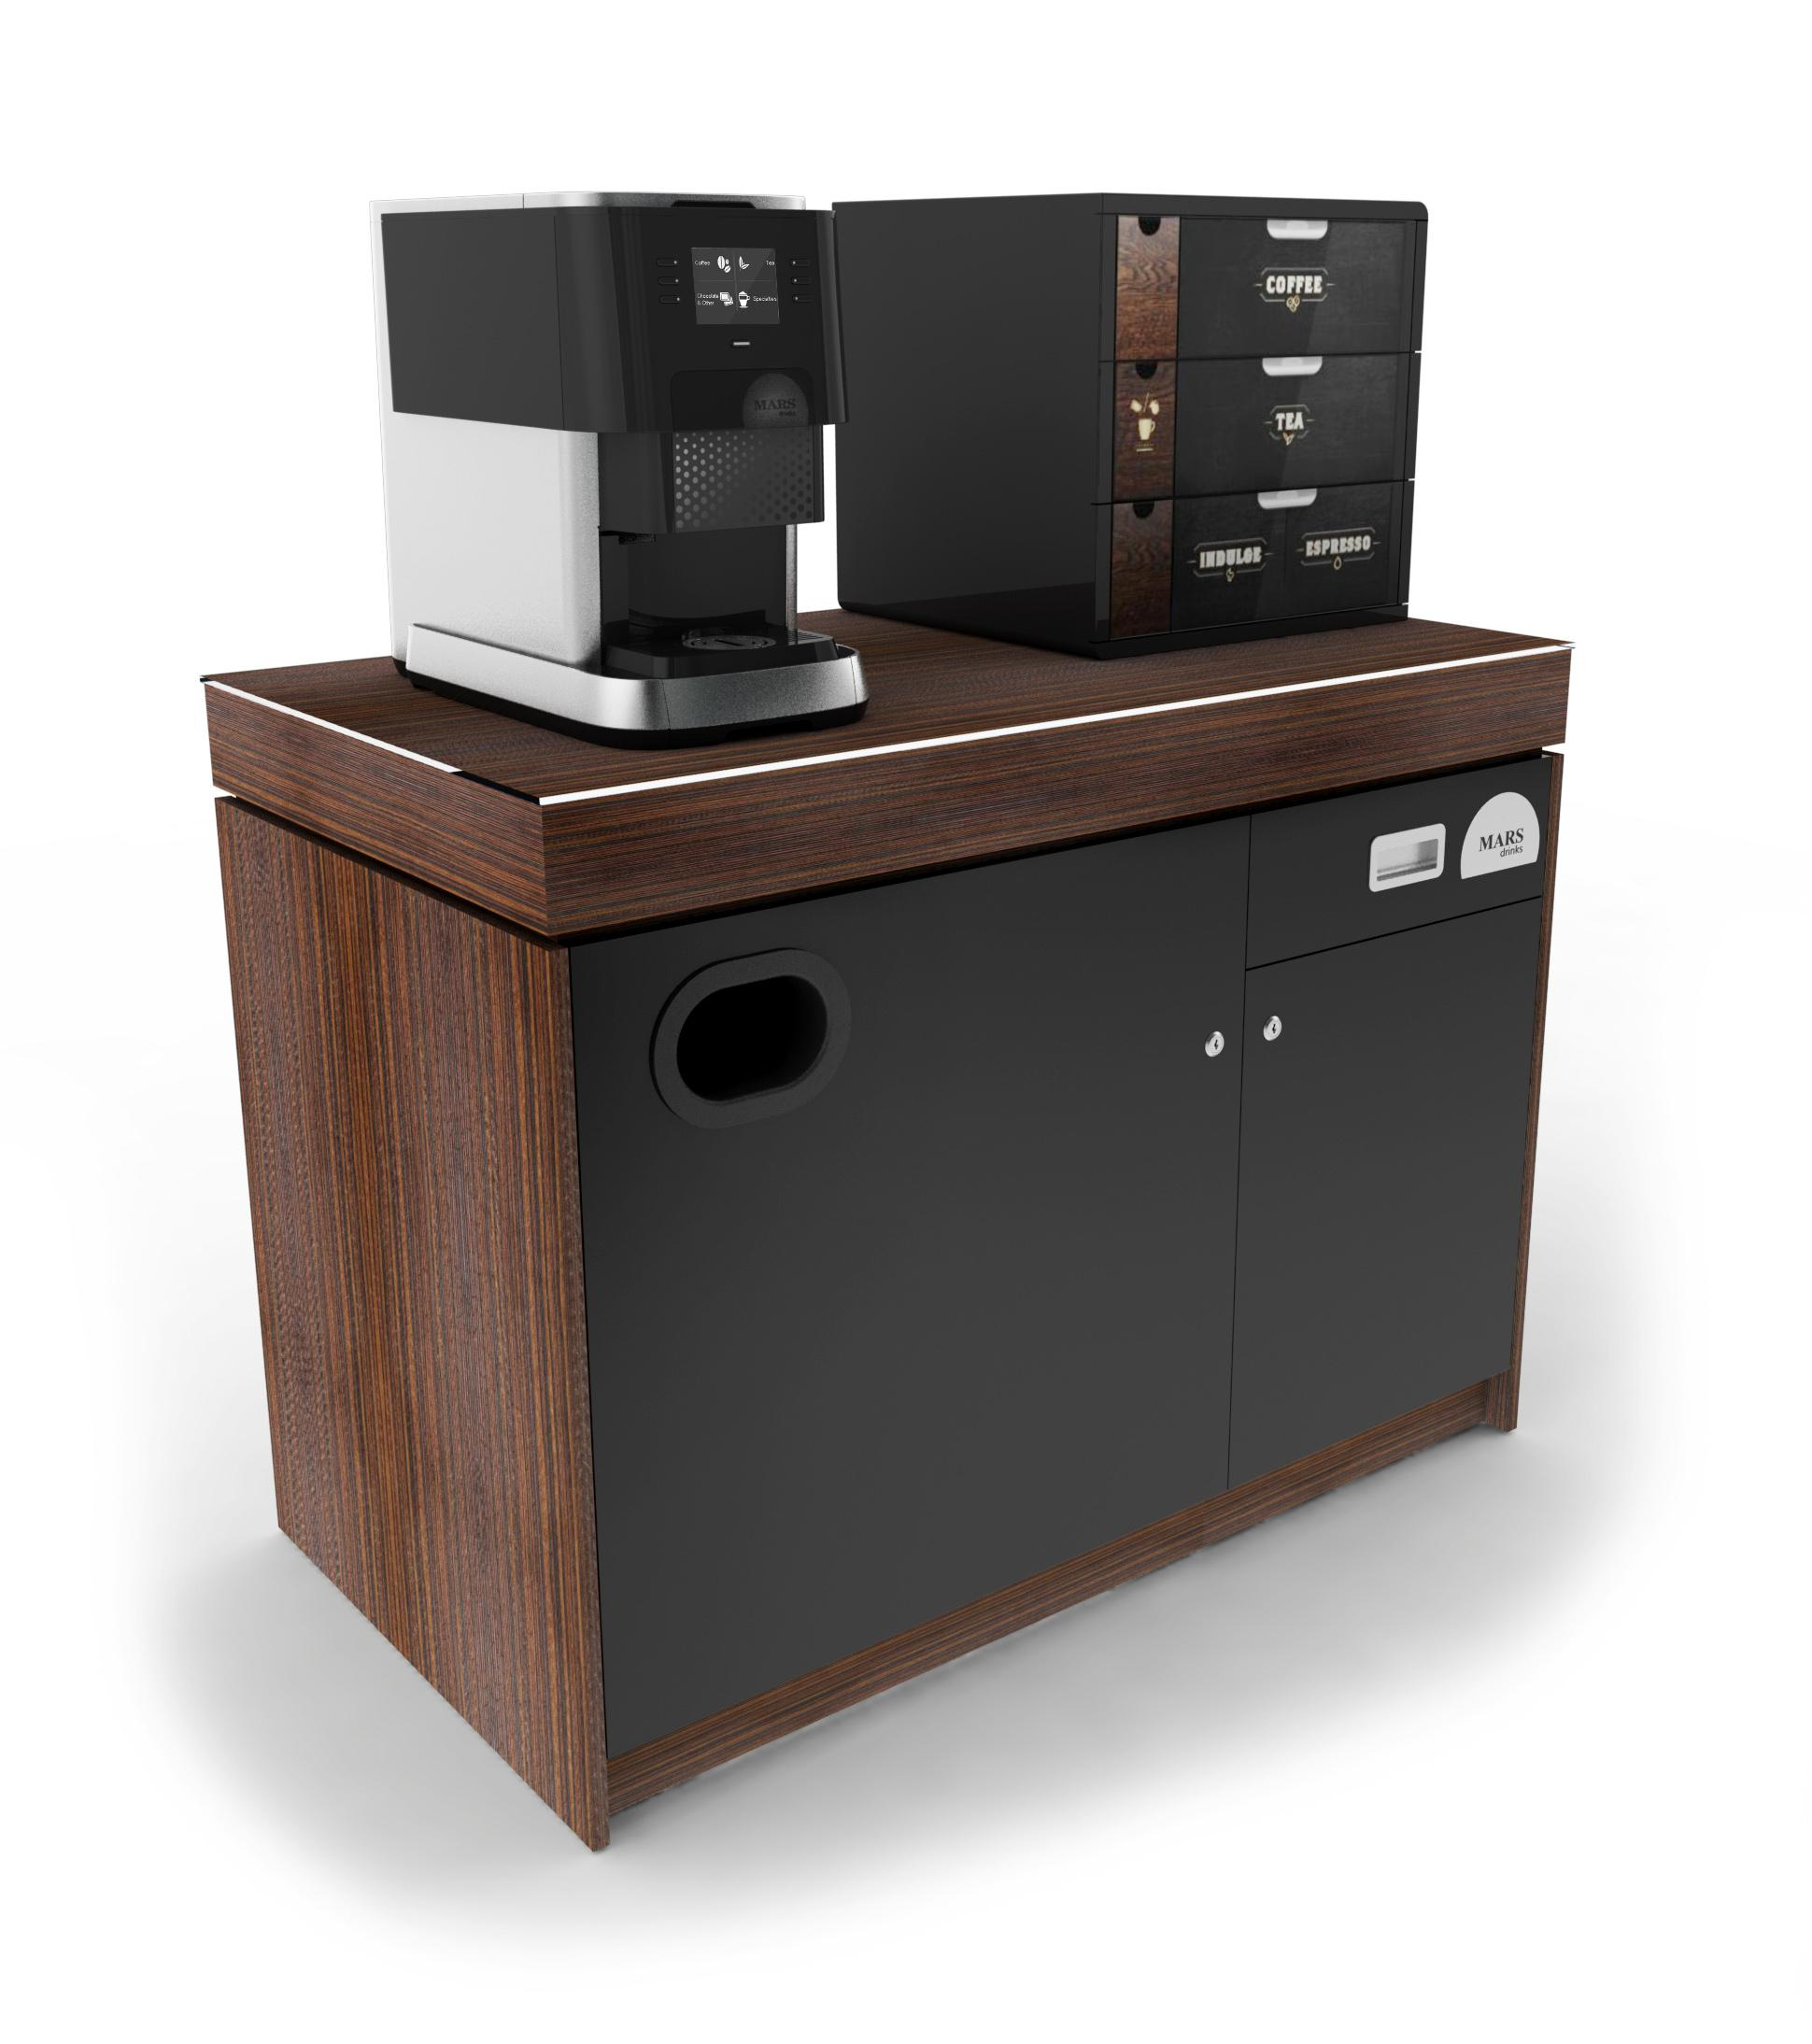 FLAVIA C500 on Base Cabinet with Merchandiser